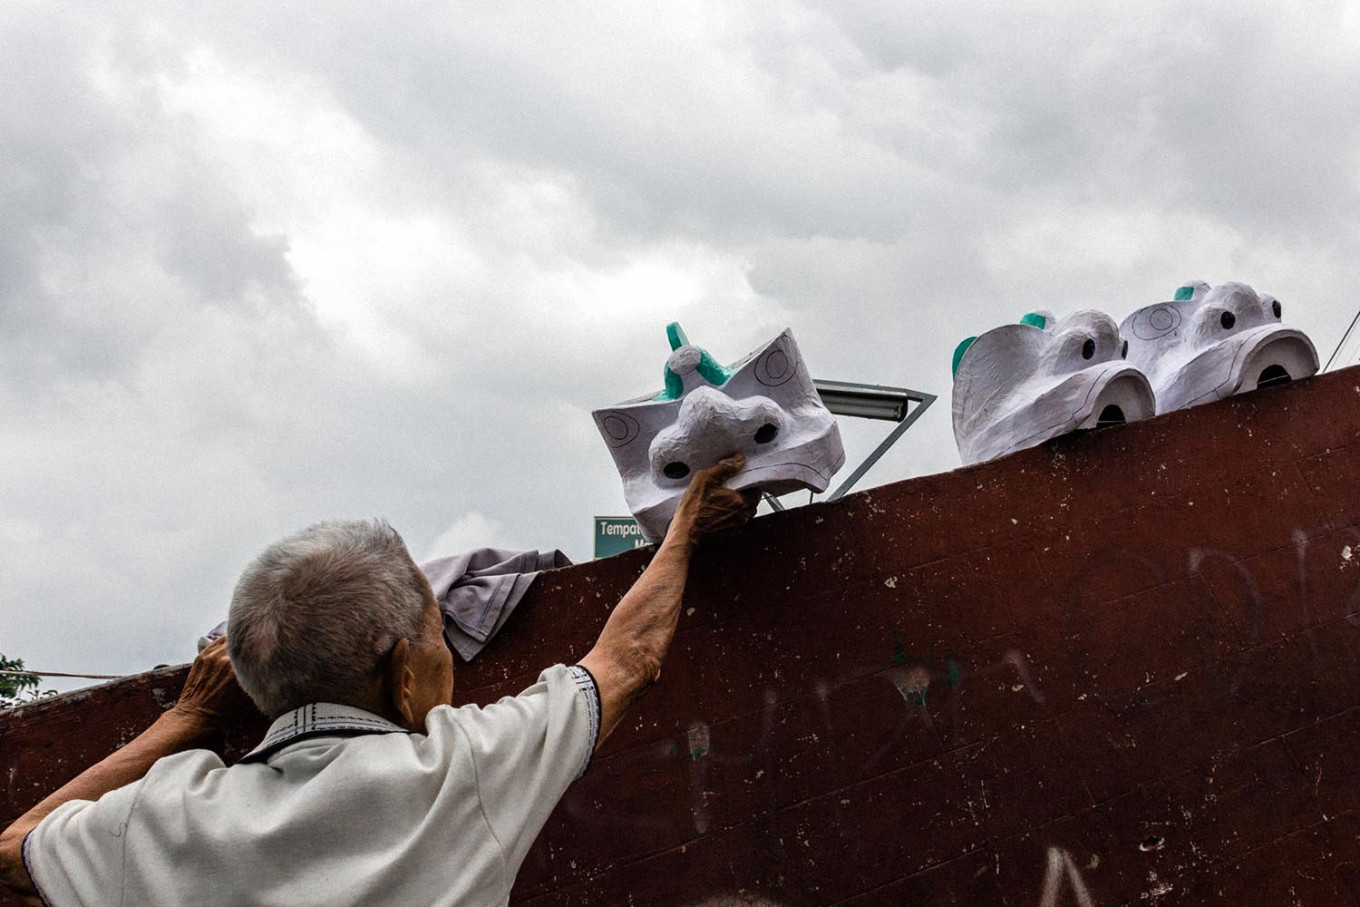 Work in process: Doel puts out barongsai lion heads to be dried in the sun. JP/Anggertimur Lanang Tinarbuko